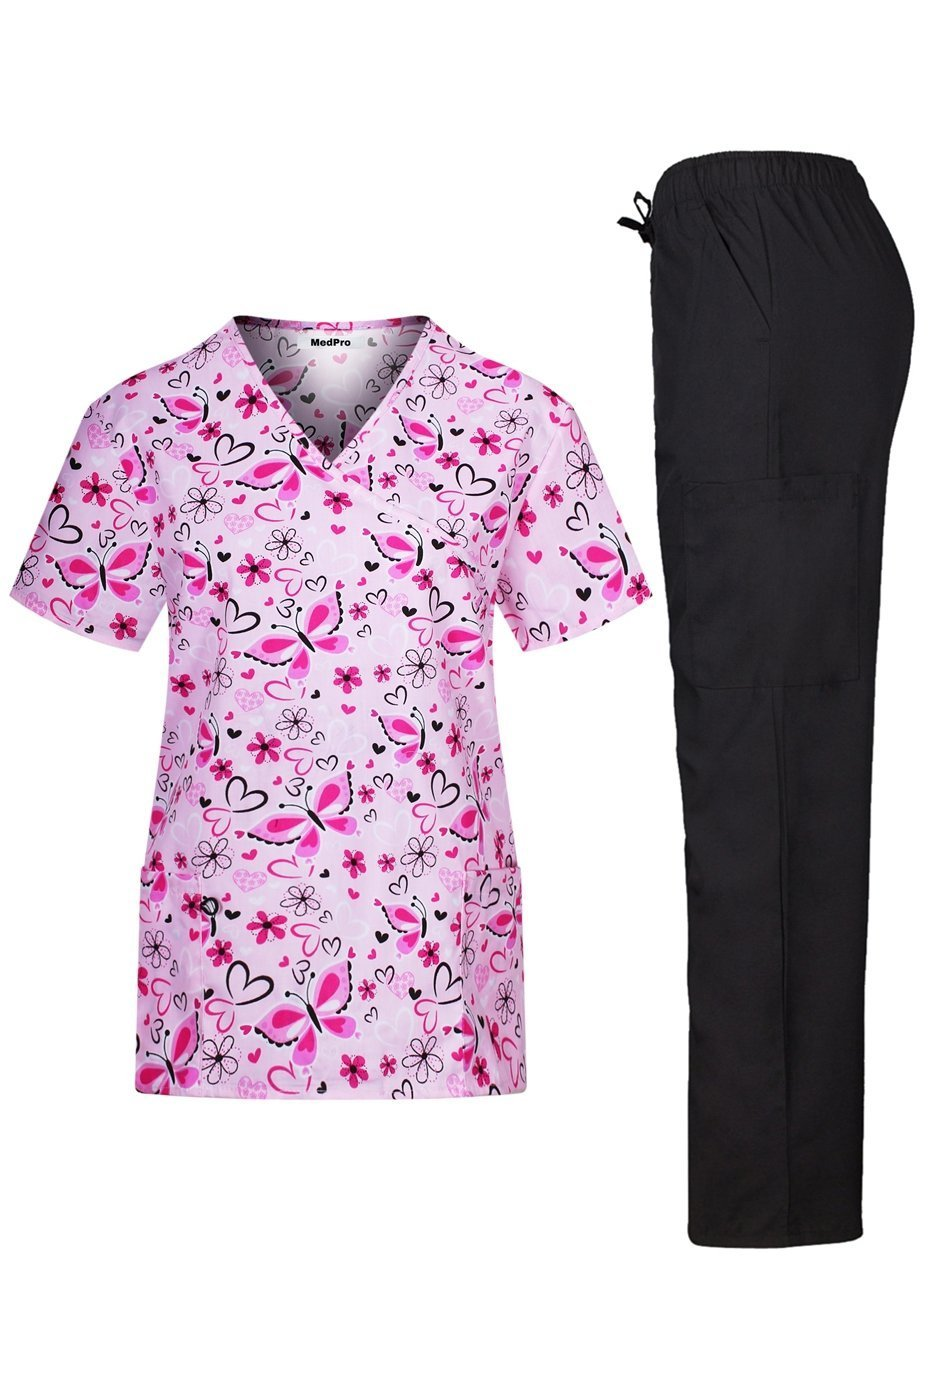 MedPro Women's Medical Scrub Set with Printed V-Neck Wrap Top and Cargo Pants? Pink Black L